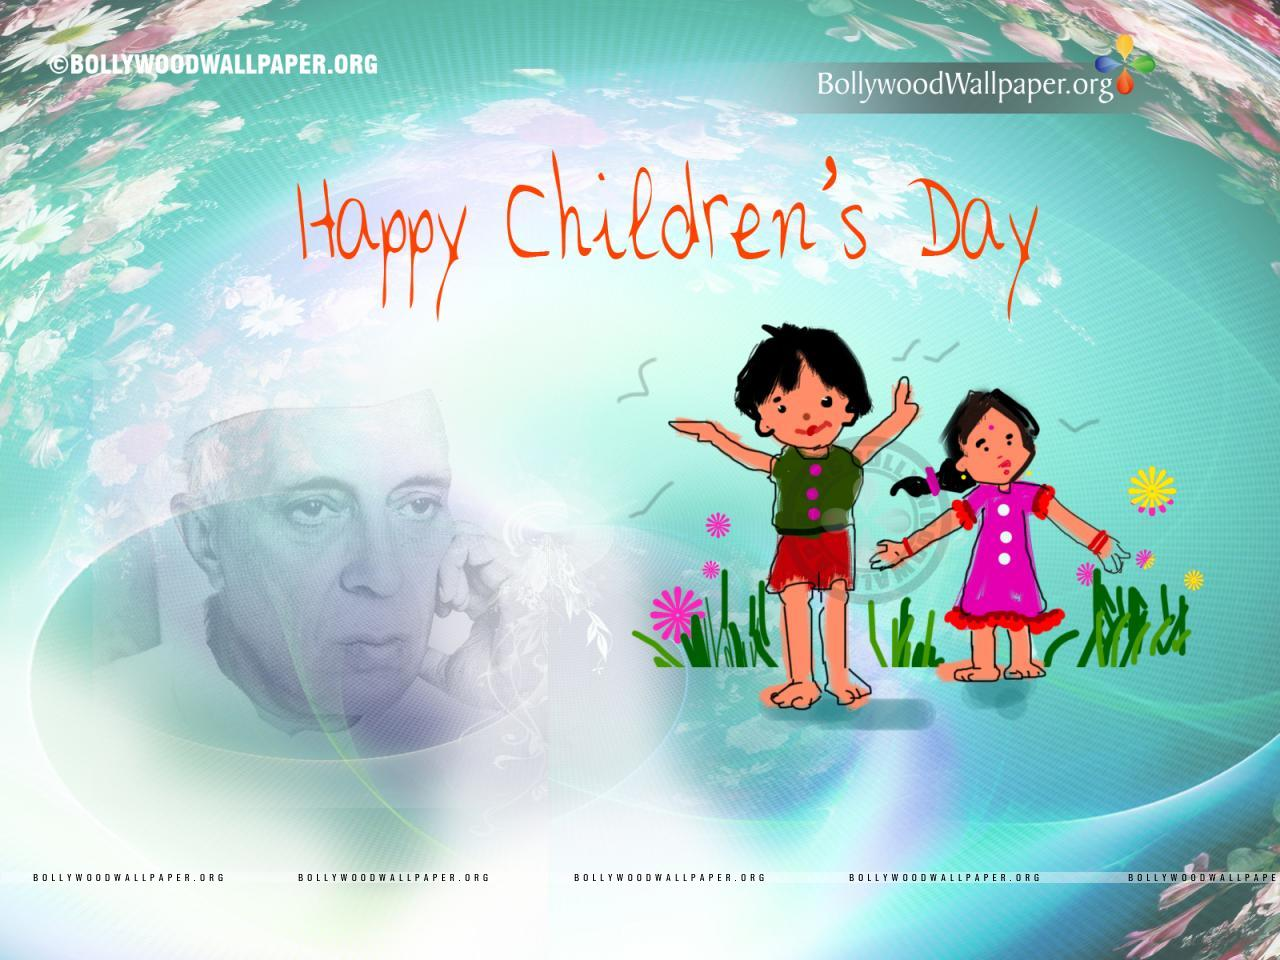 Childrens Day Wallpaper 6